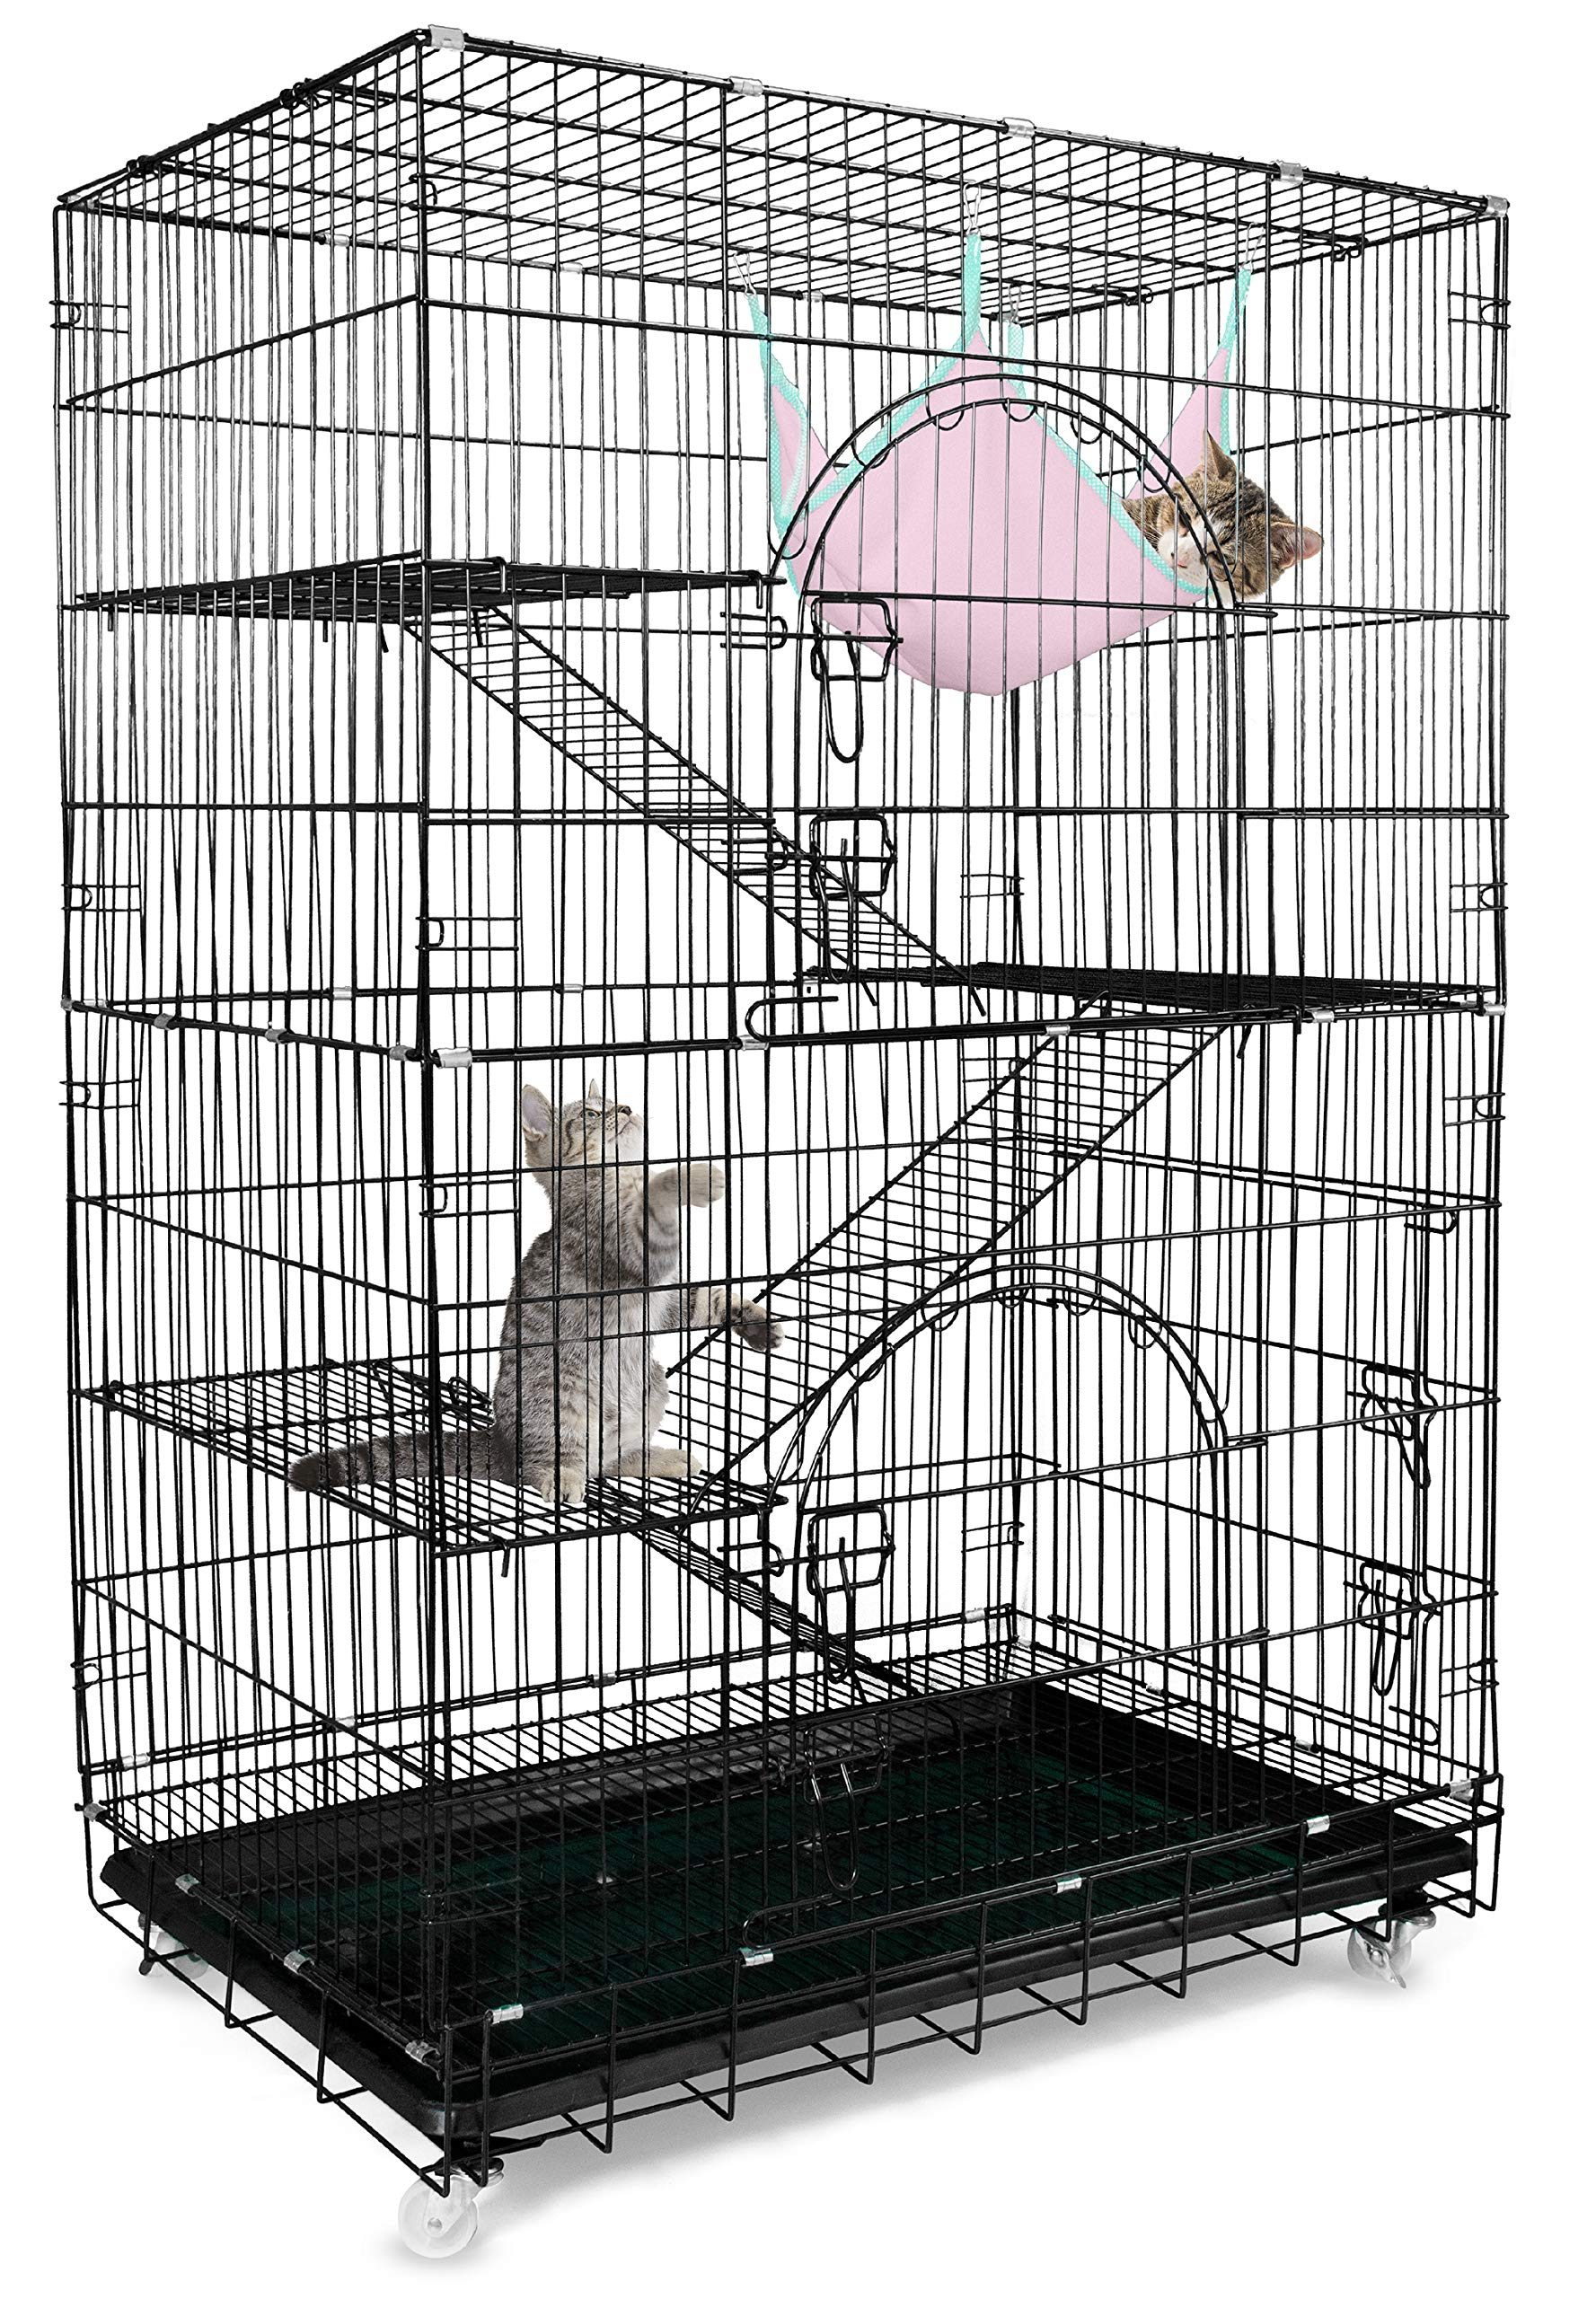 Petsmatig Wire Cat Cage: Spacious Foldable Metal Pet Crate Playpen with 3 Openings, 3 Platforms, 3 Ladders, 1 Hammock, 1 Bottom Tray, 4 Wheels and Free Grooming Gloves by Petsmatig (Image #1)